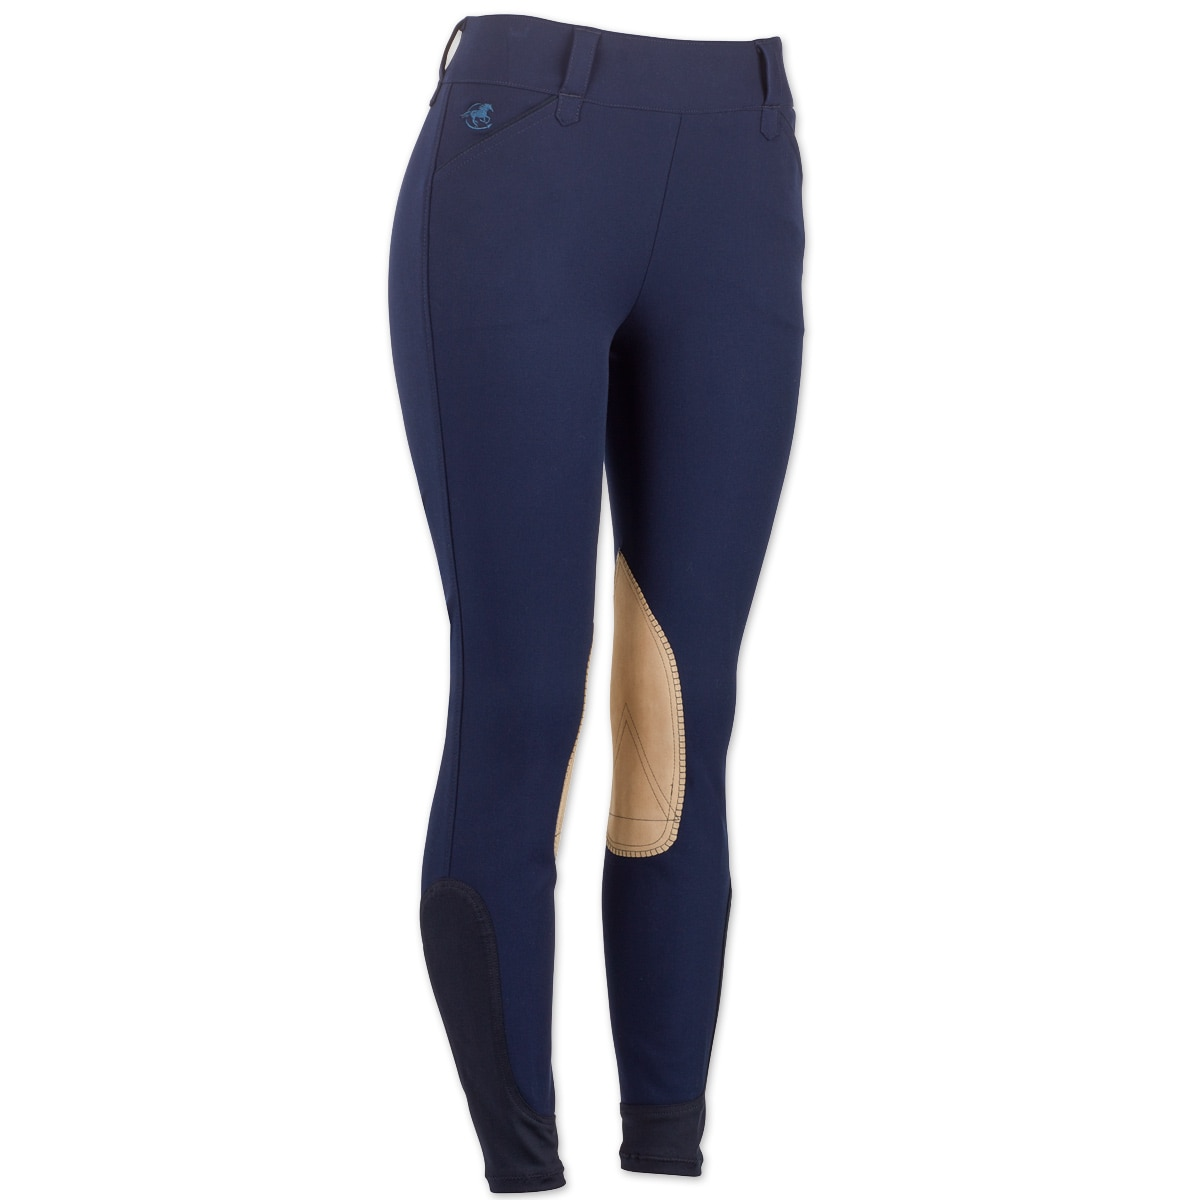 Piper Breeches by SmartPak- Tan Knee Patch Side Zip